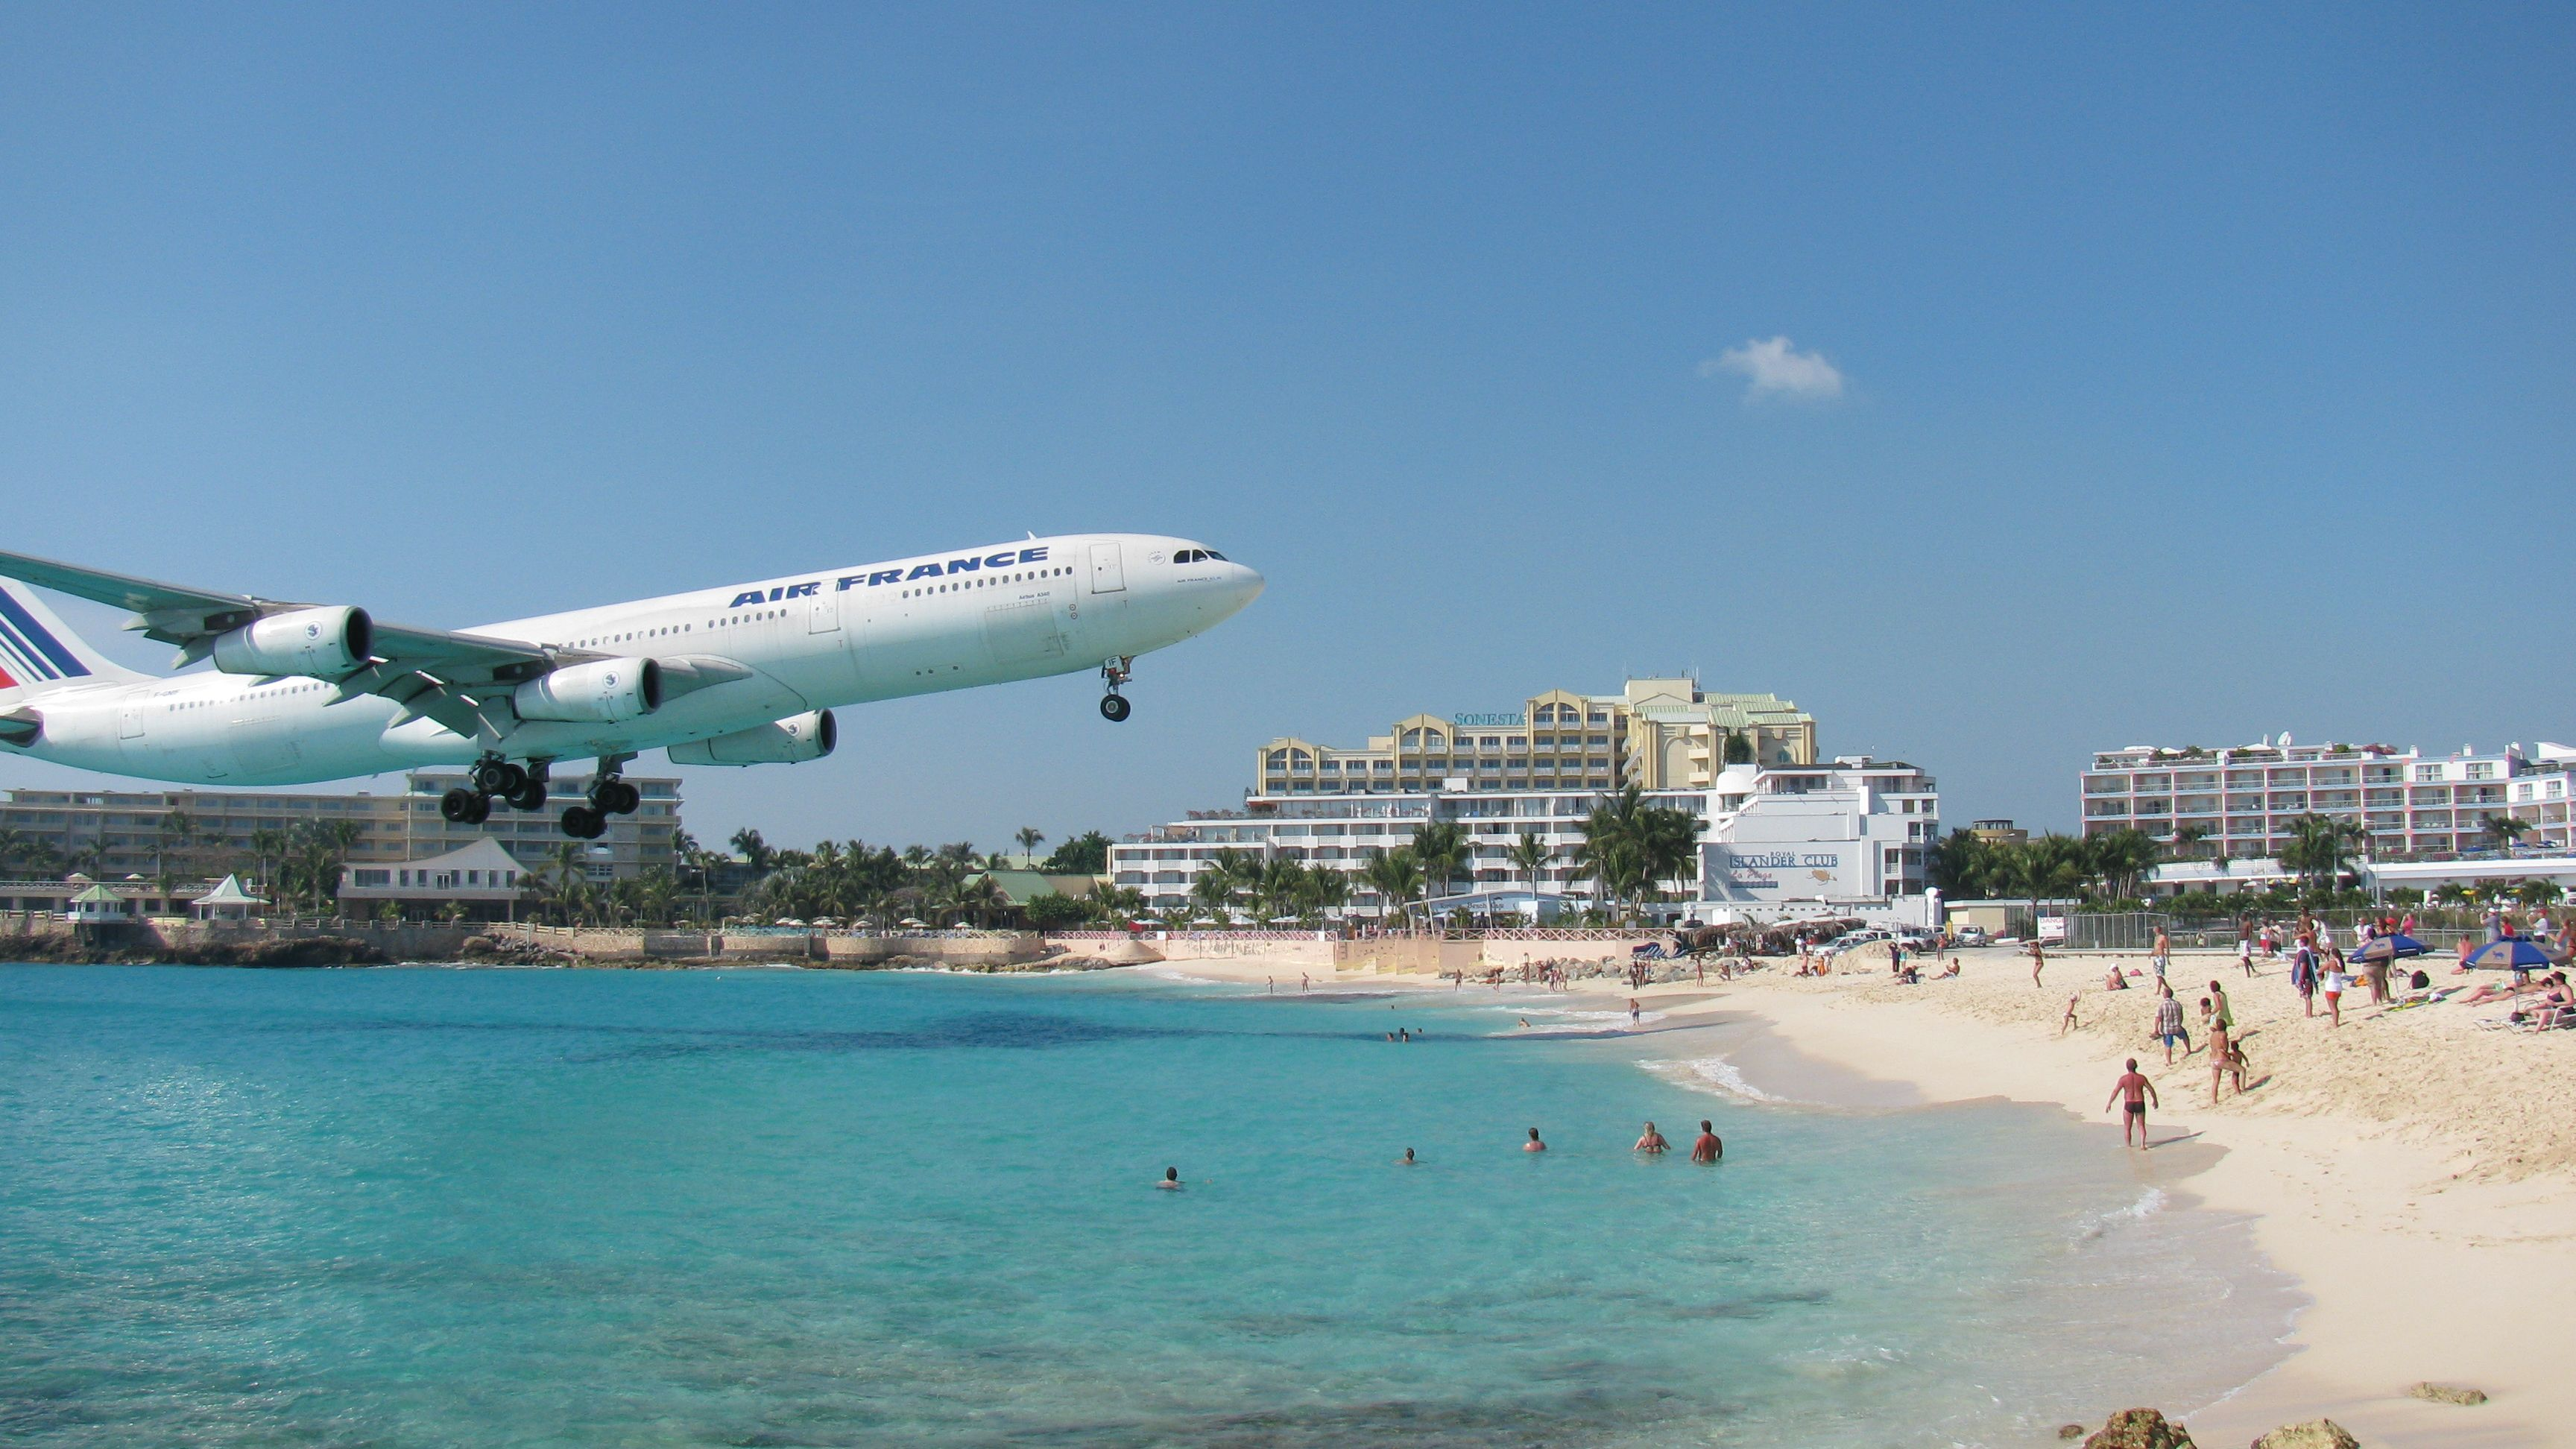 St Mar Airport How Cool Would It Be To On That Beach When A